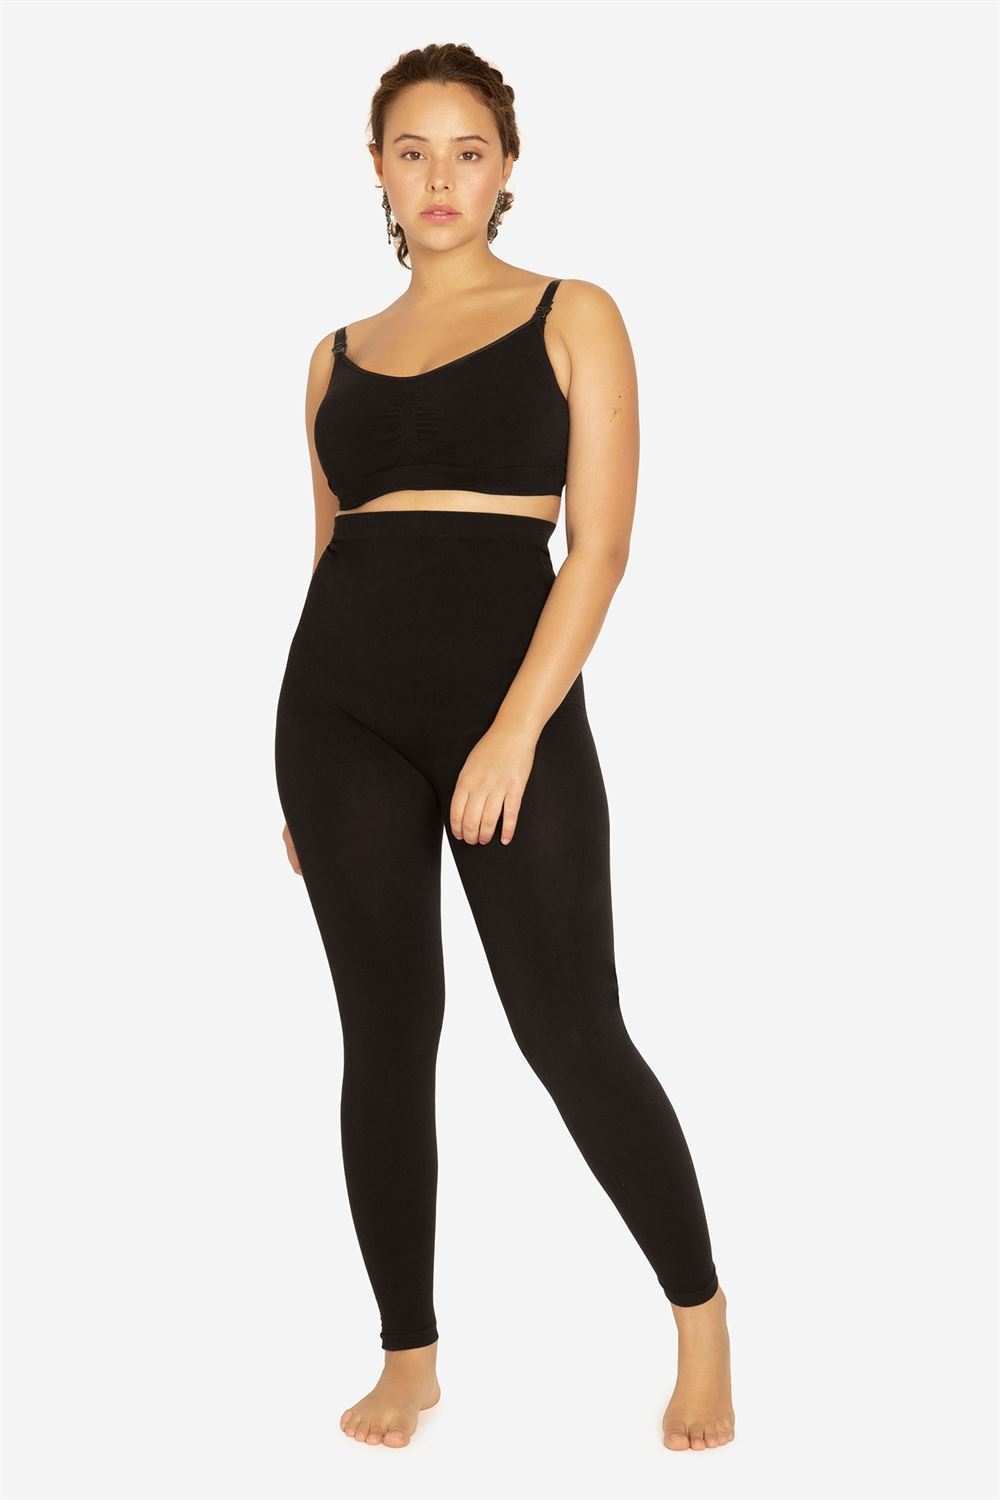 Black maternity leggings for pregnant women - In Organic bamboo - On plus size model